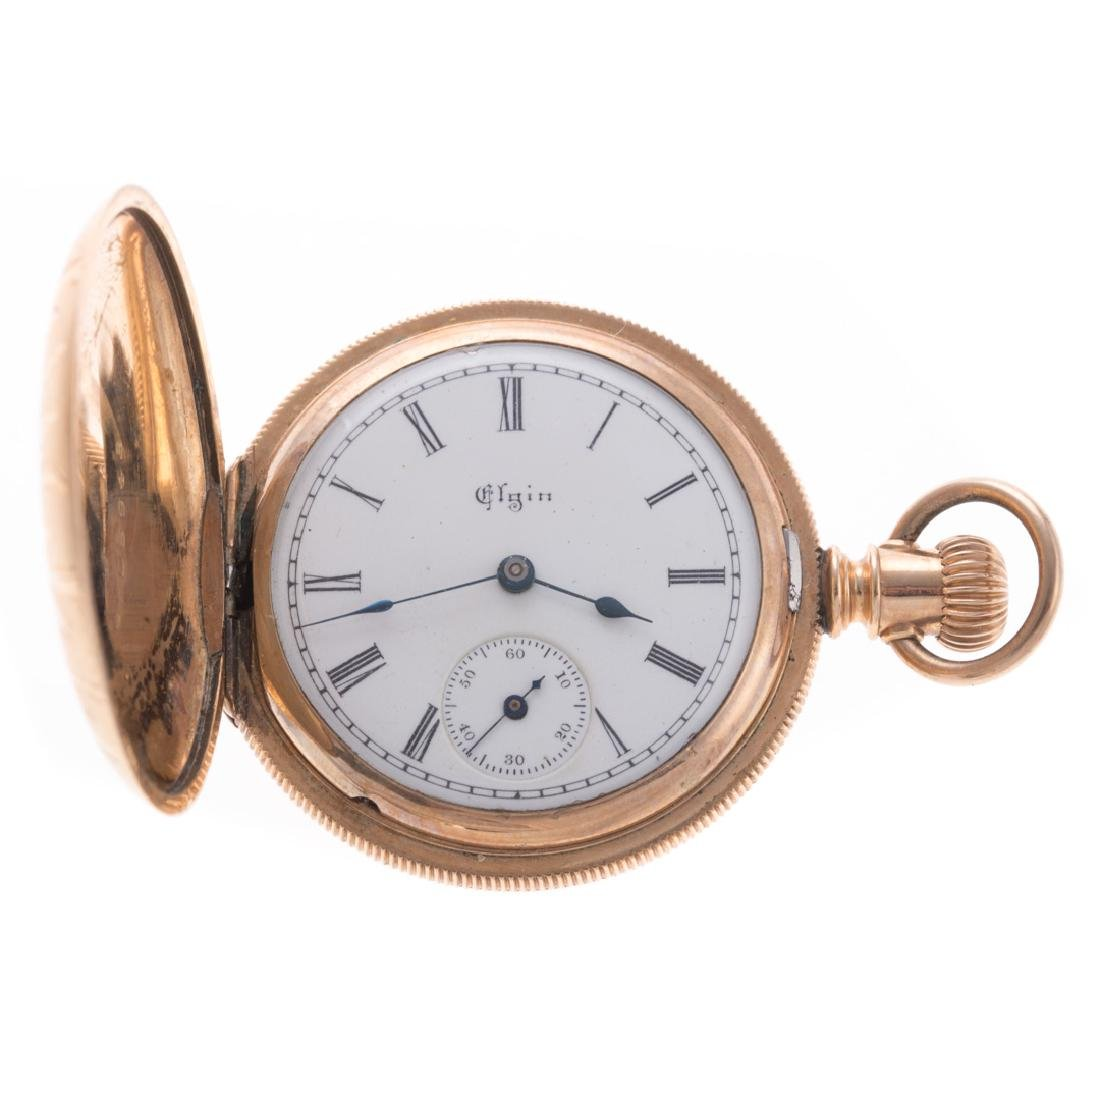 A Lady's 14K Hunter Case Pocket Watch